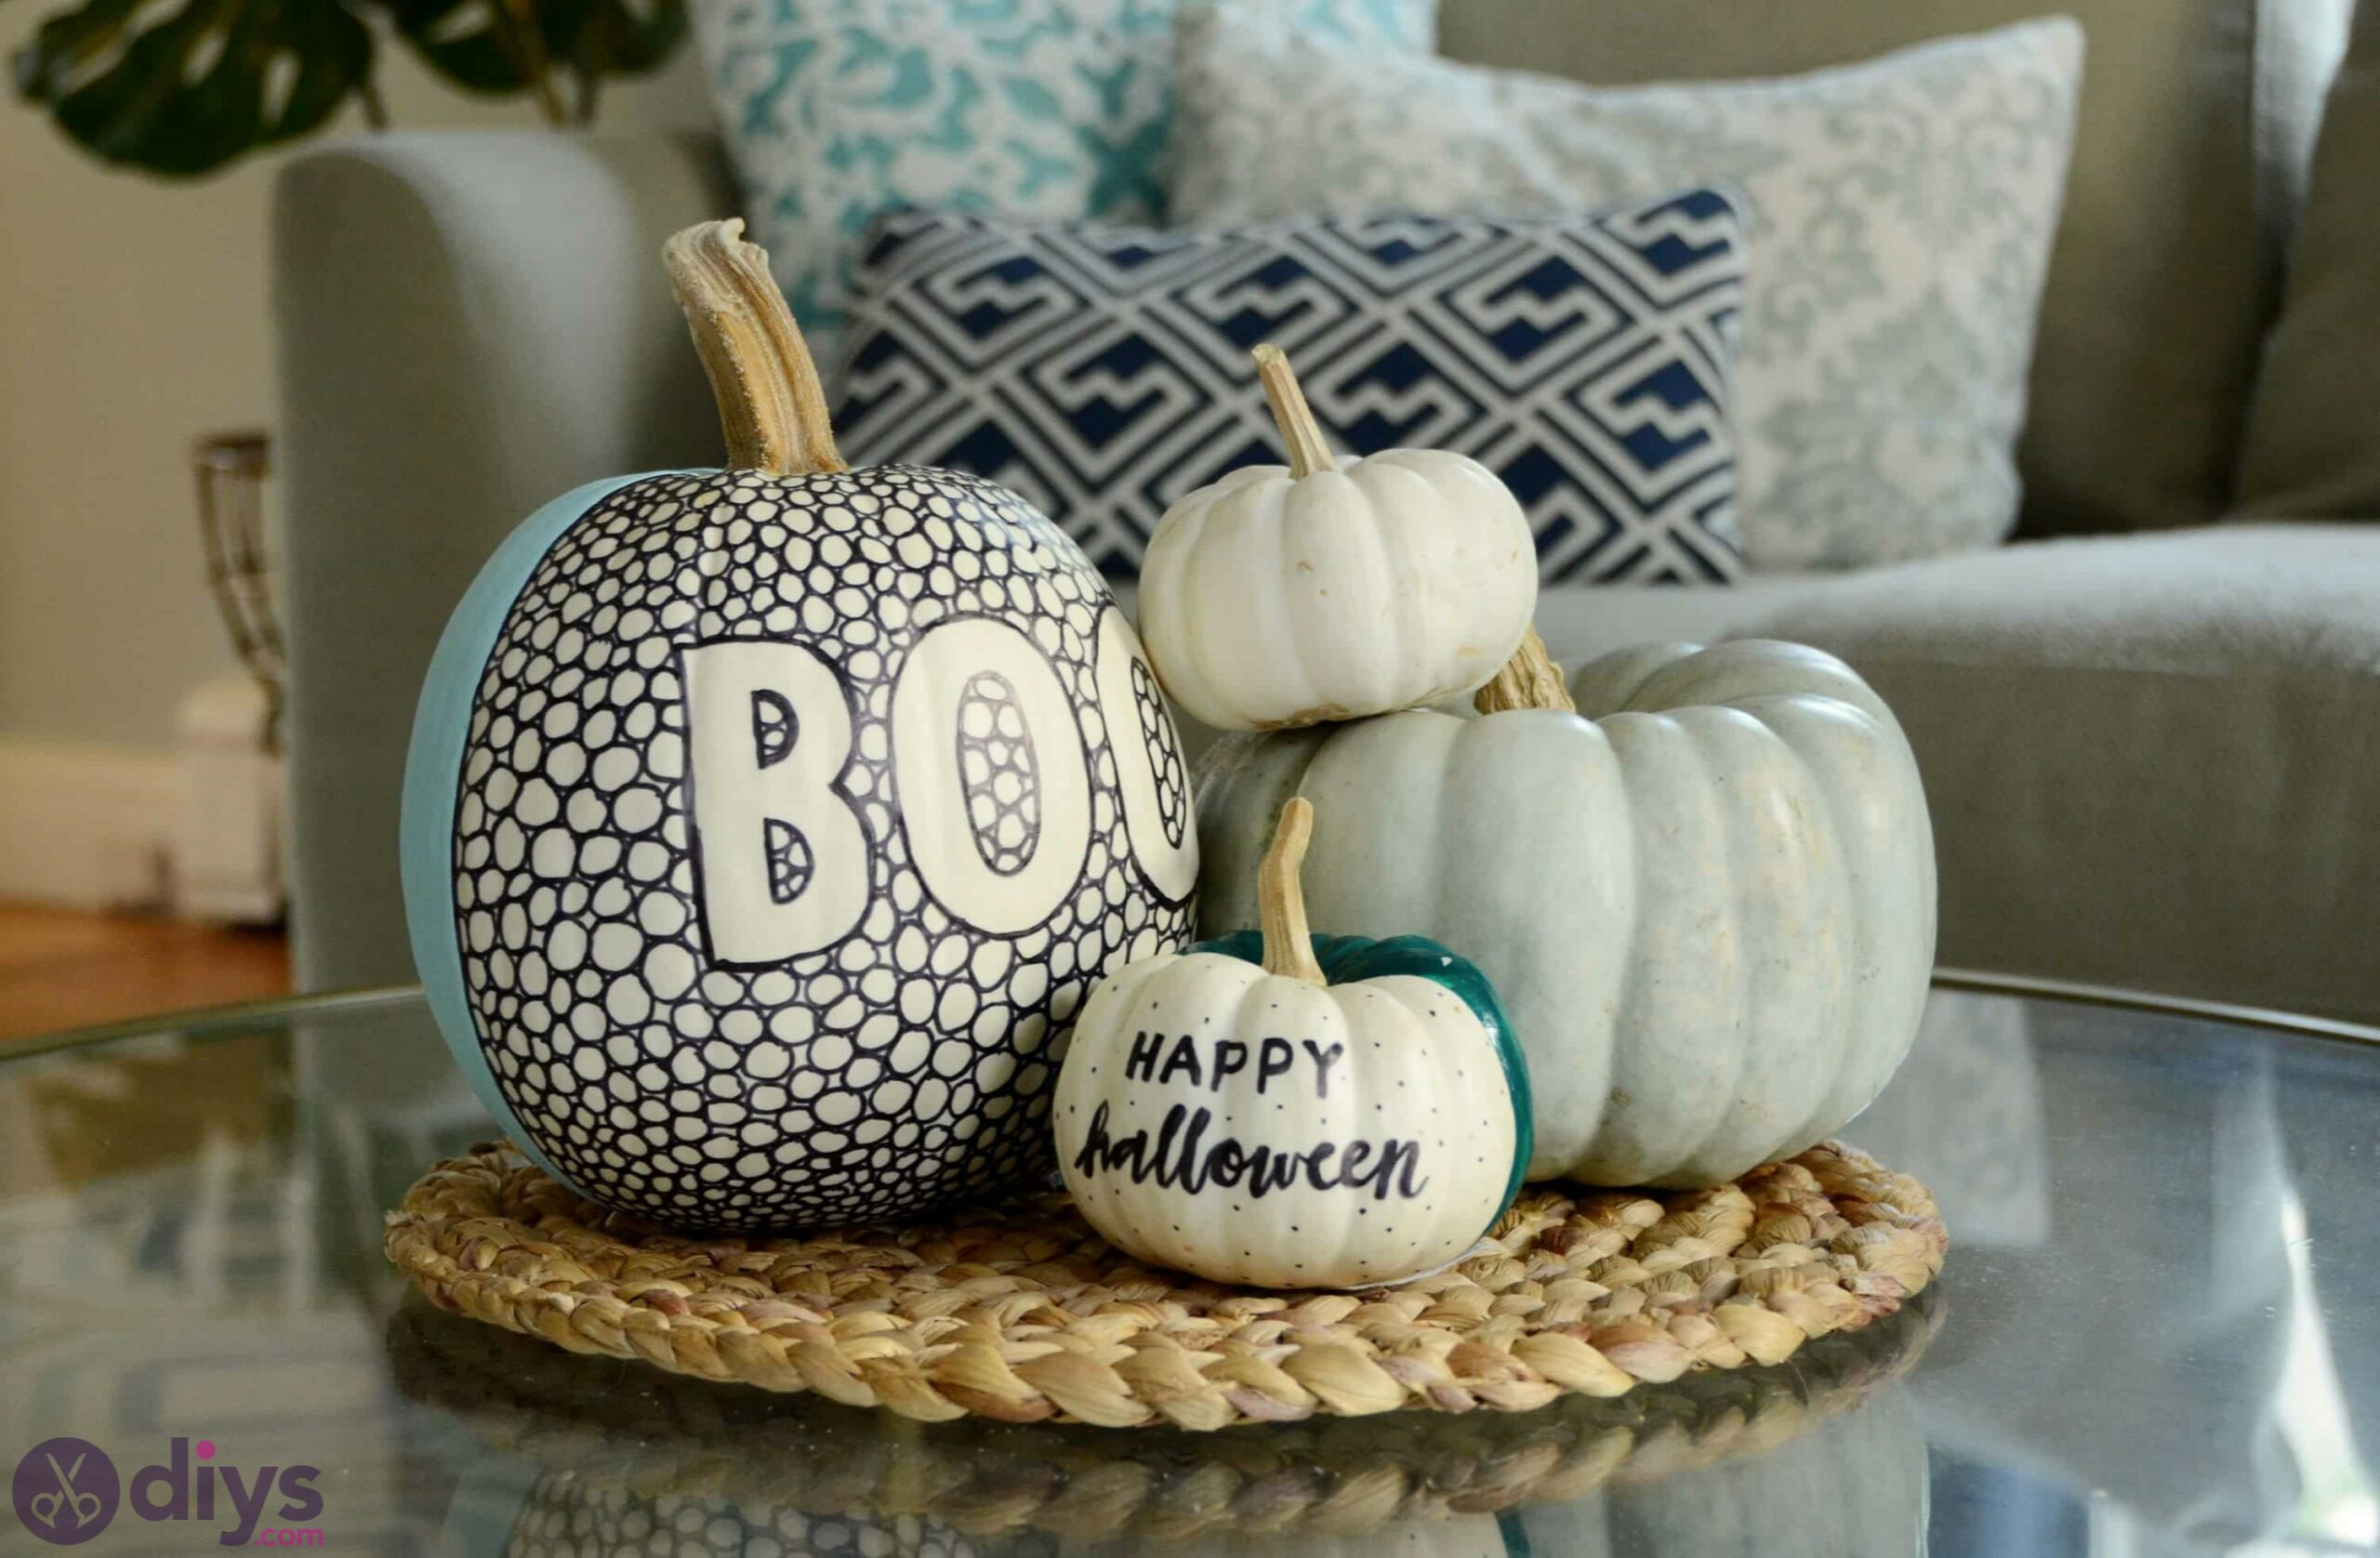 Black and white patterned pumpkin halloween decorations